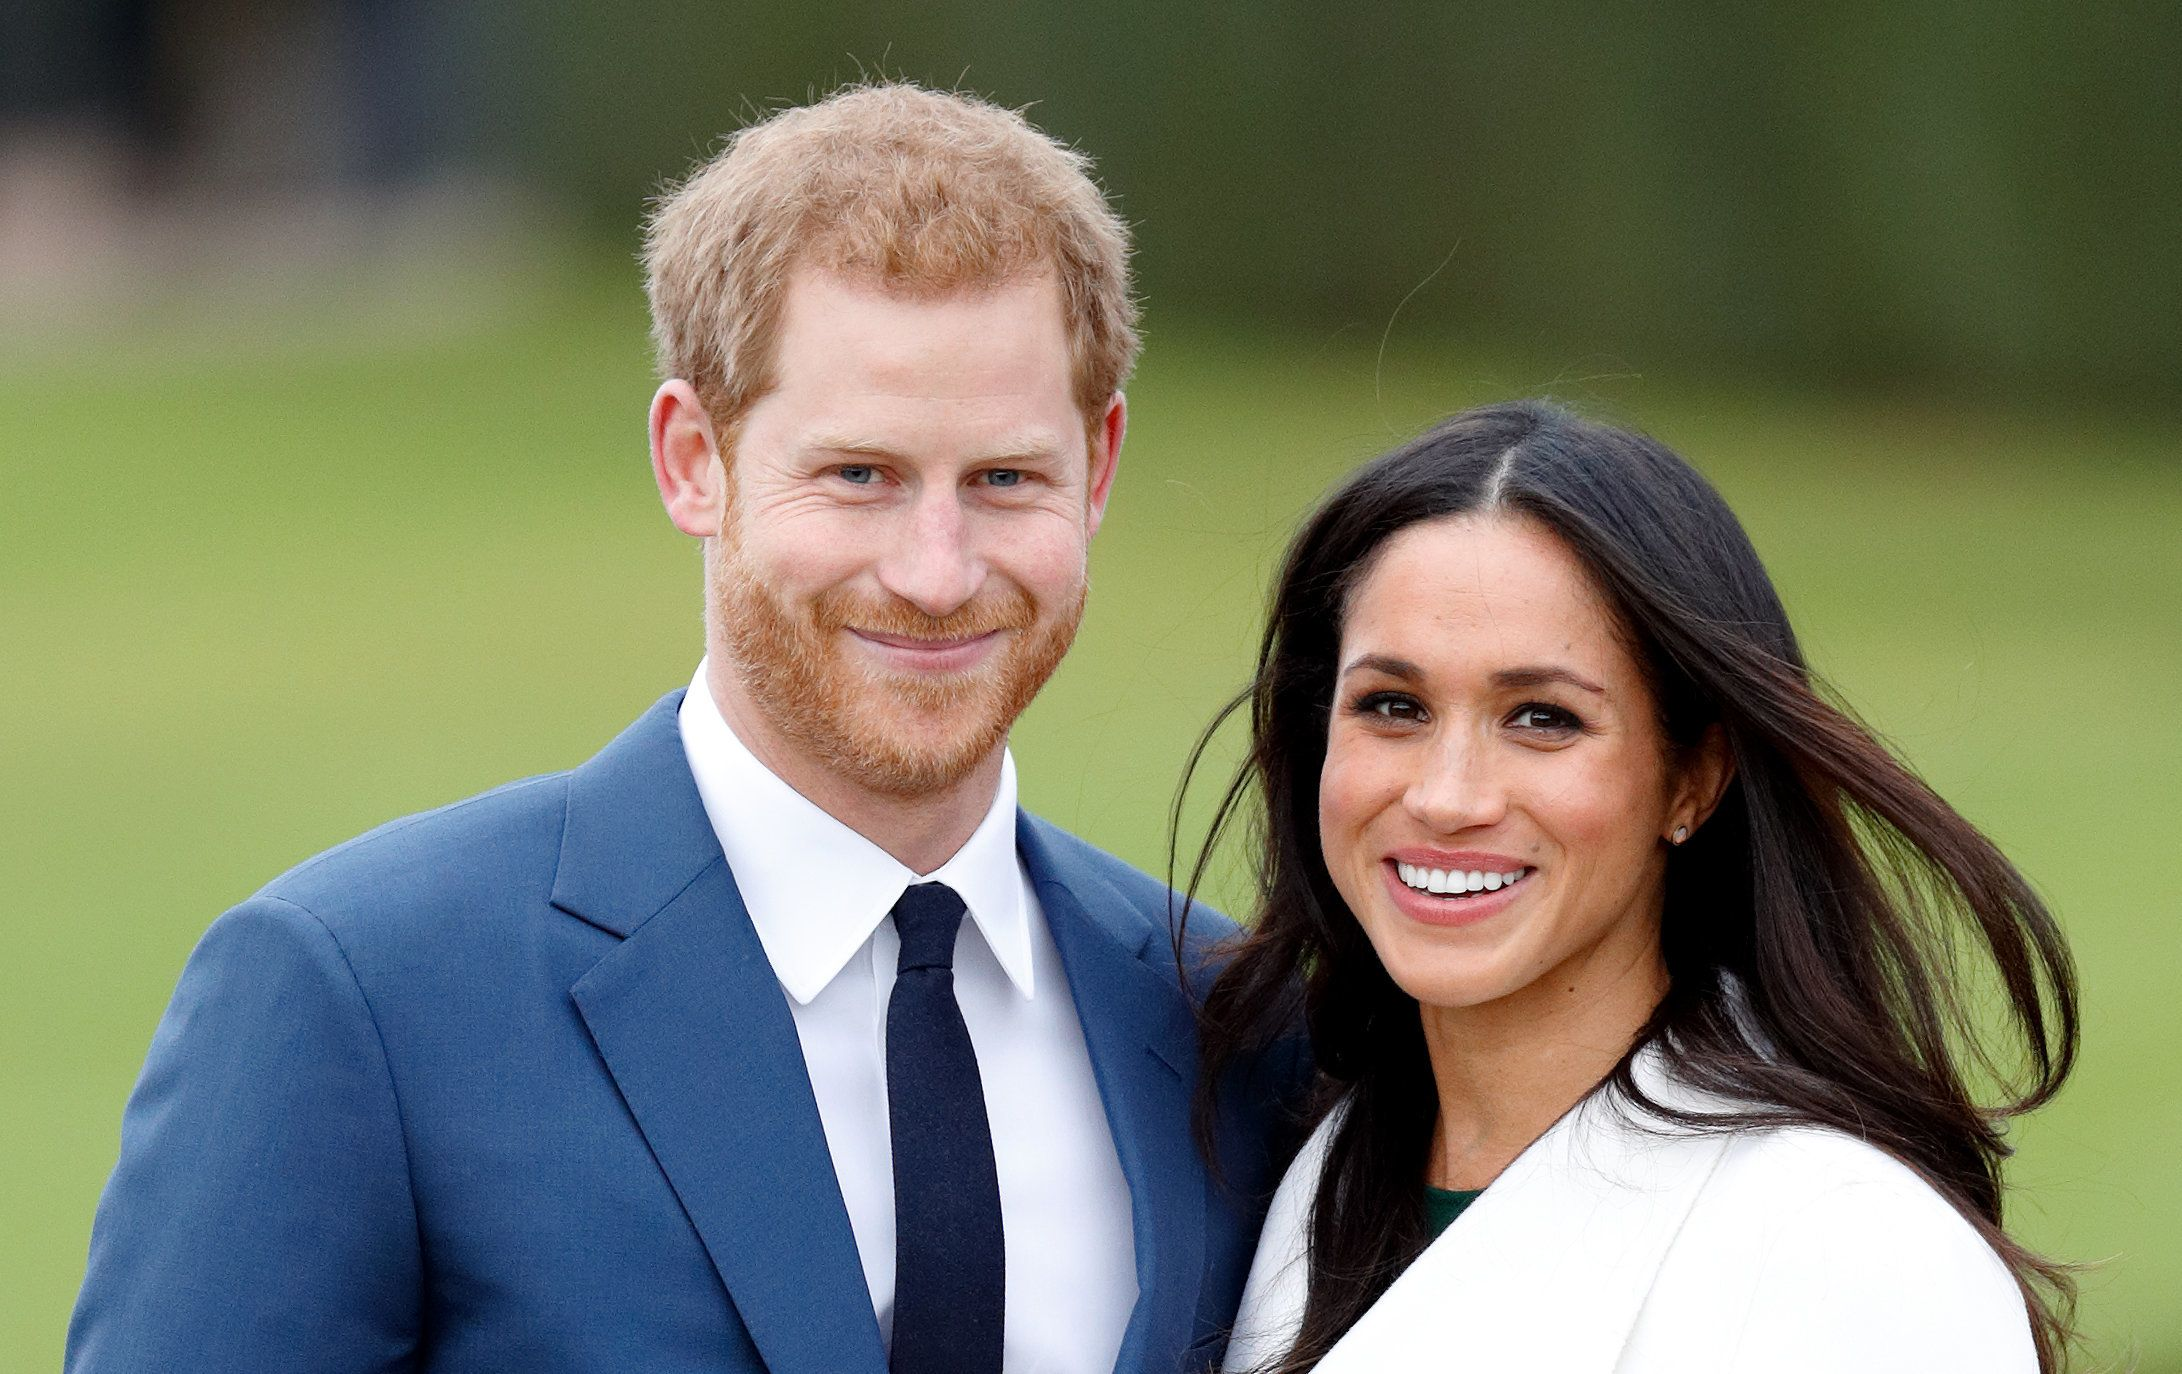 Meghan Markle broke this royal rule at her engagement announcement